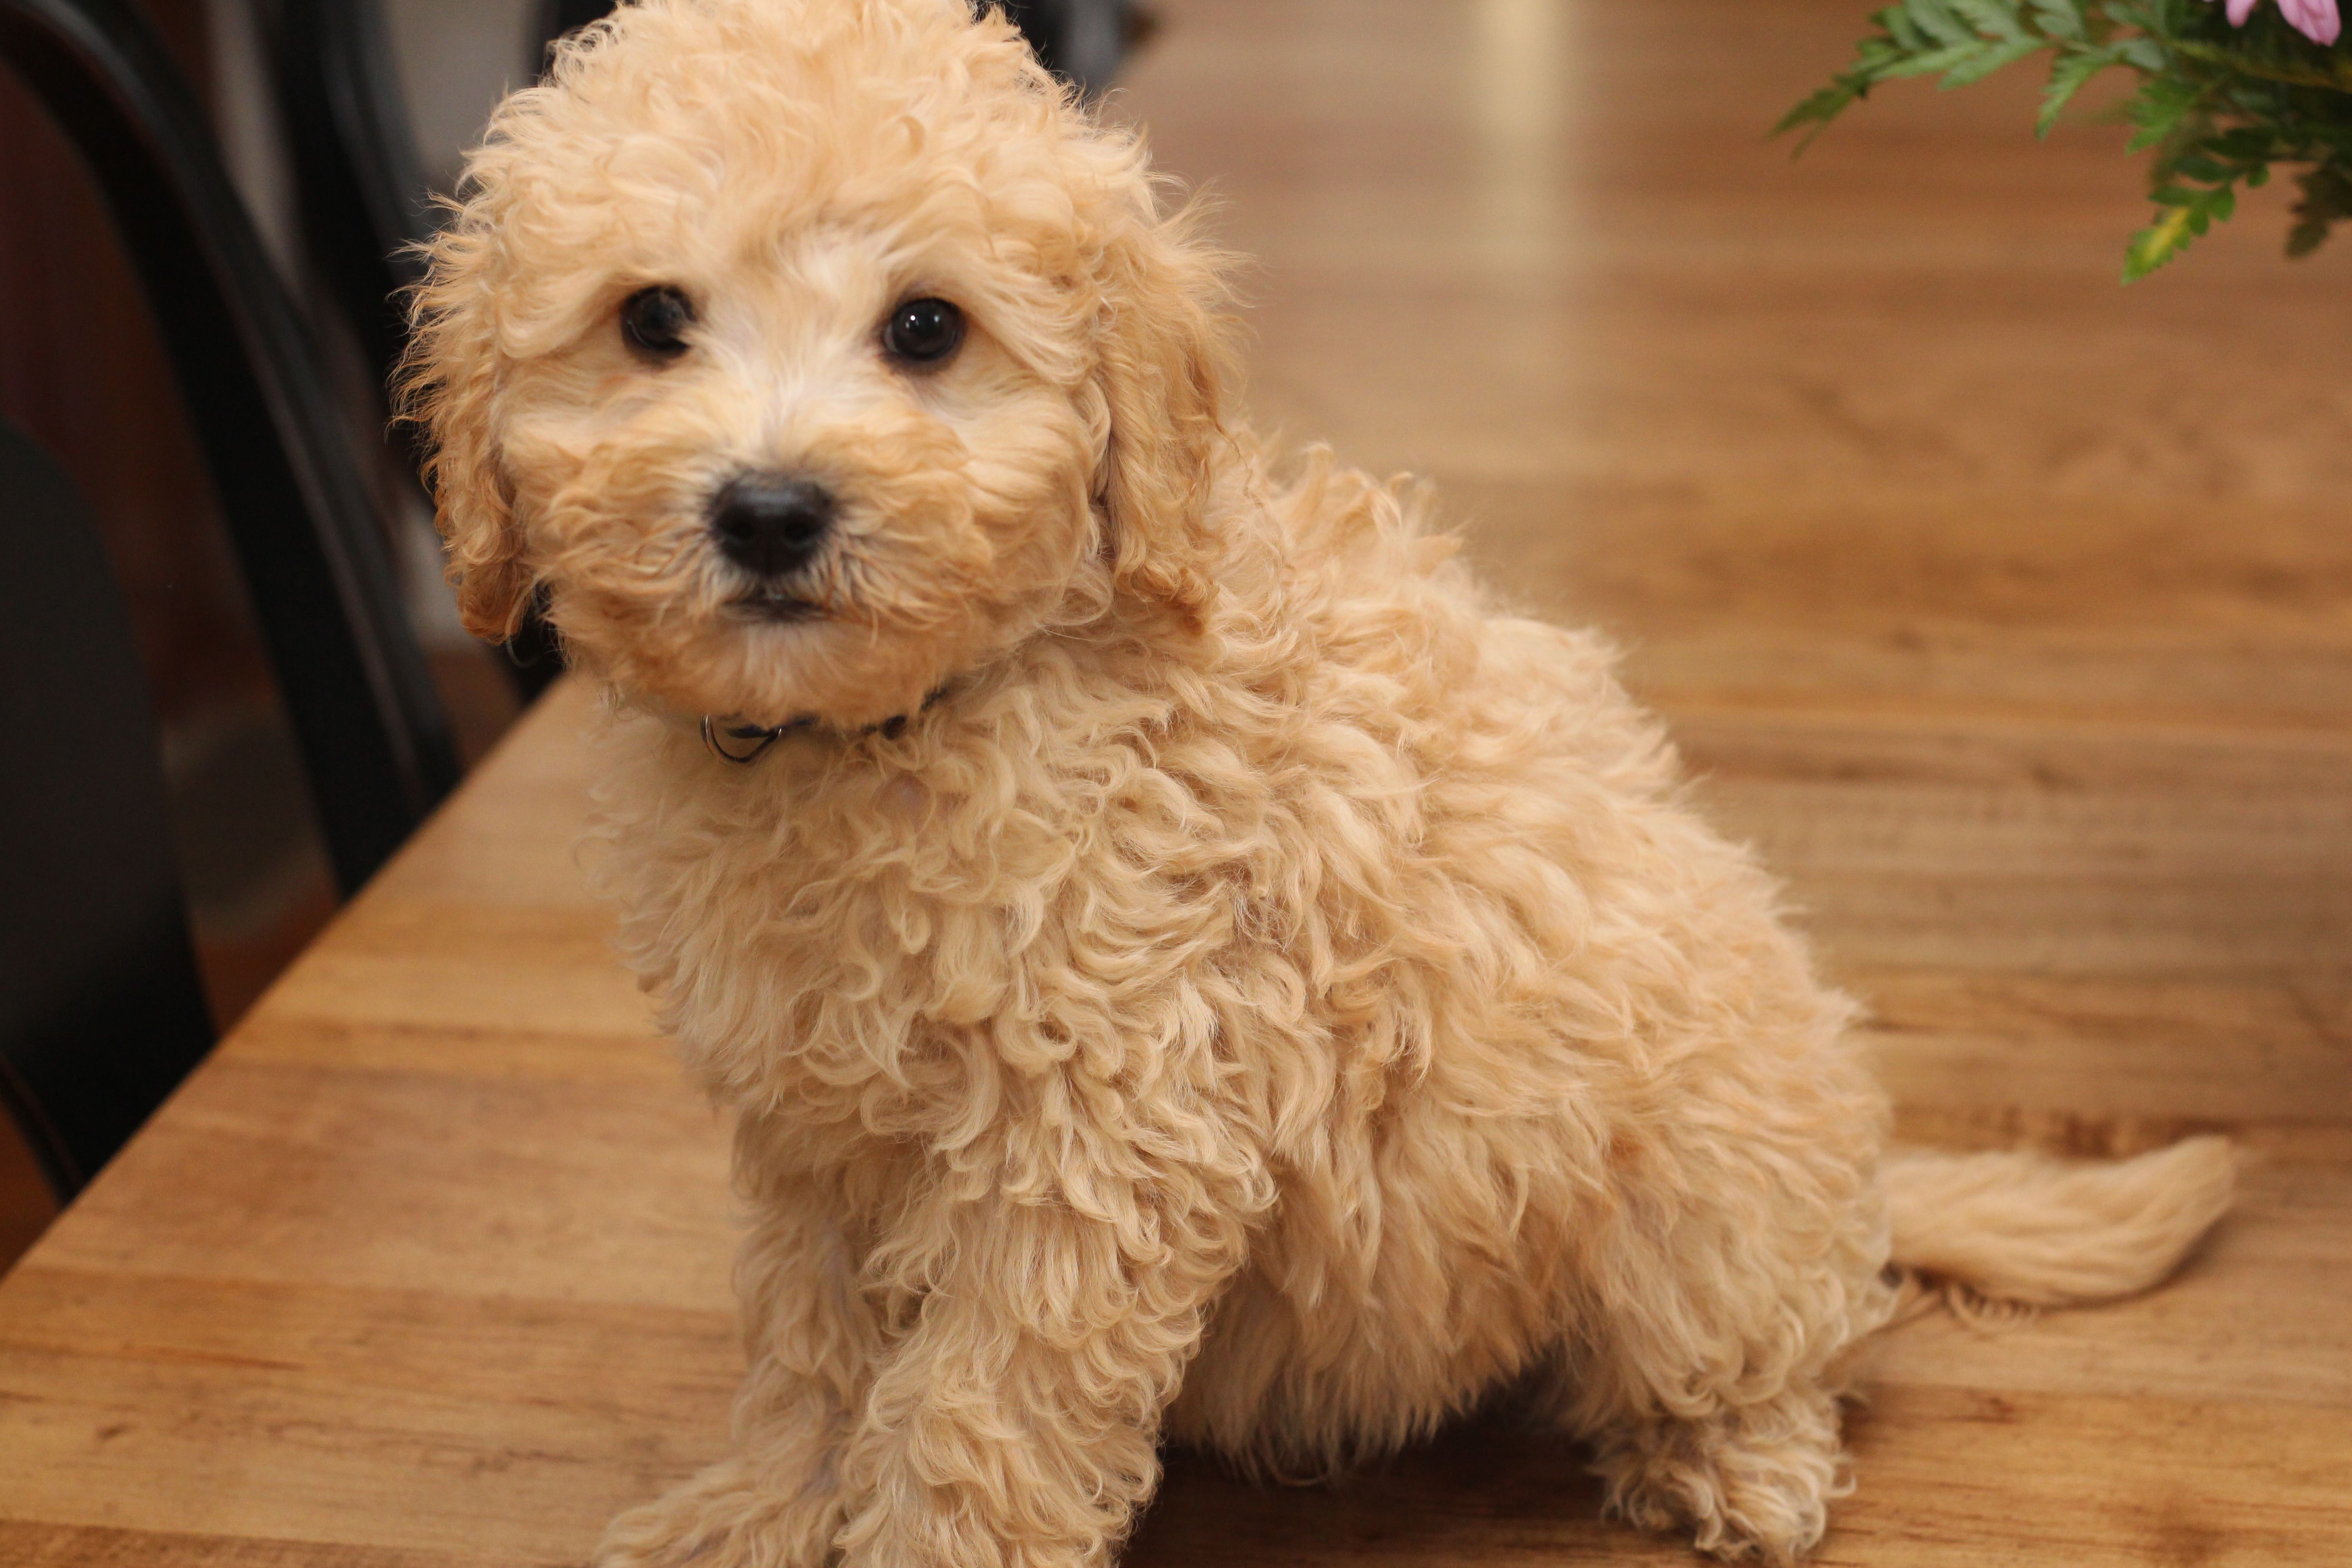 10 Week Old Mini Goldendoodle Puppy By Mimi At River Valley